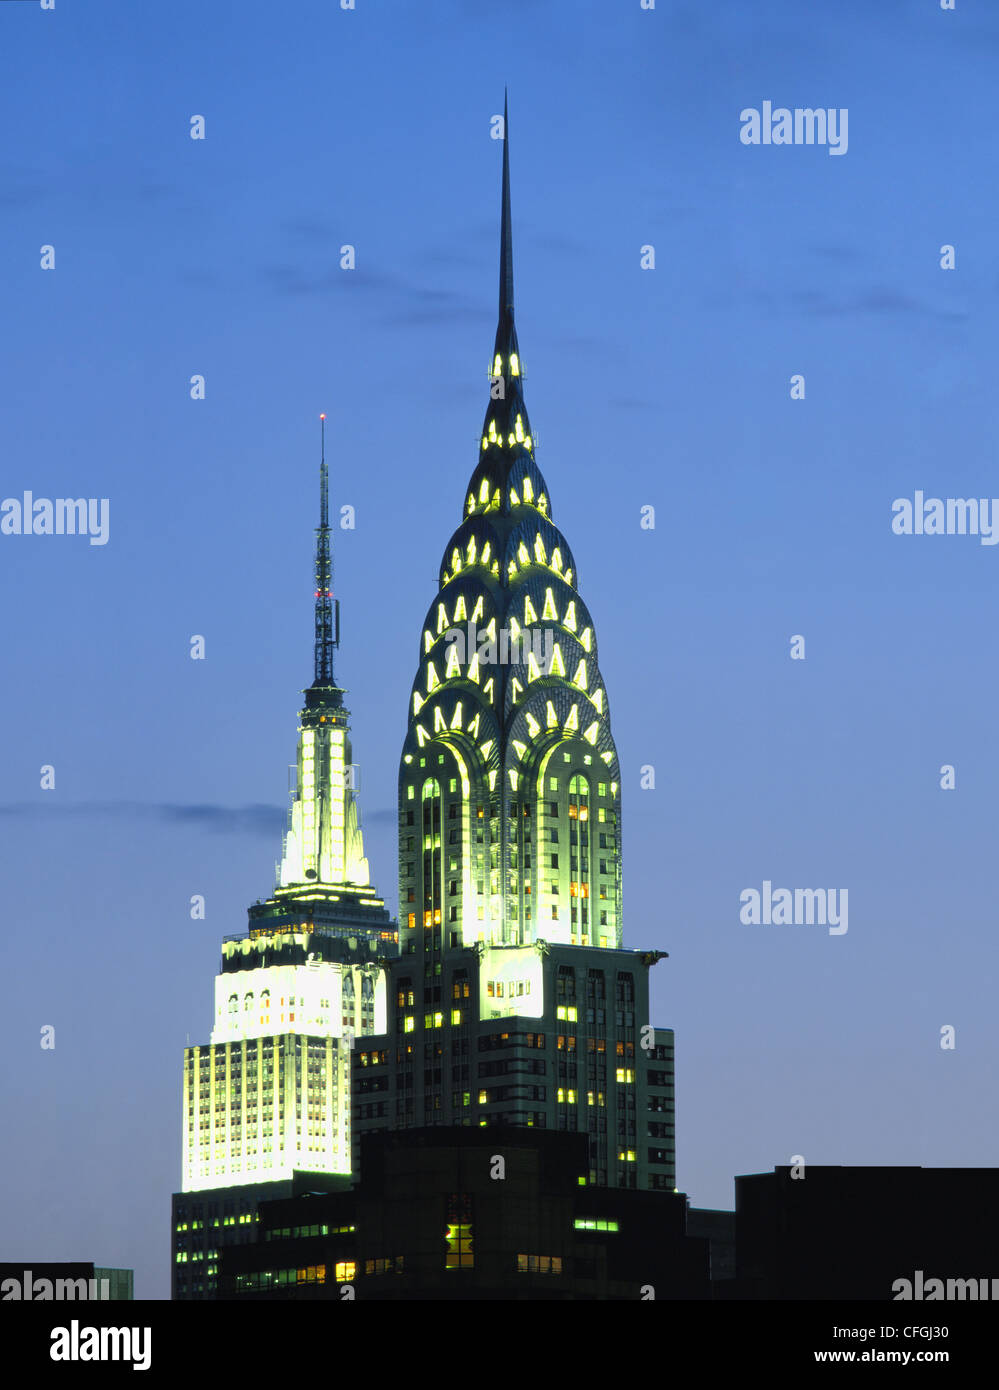 CHRYSLER AND EMPIRE STATE BUILDINGS AT NIGHT, NEW YORK, USA. Stock Foto